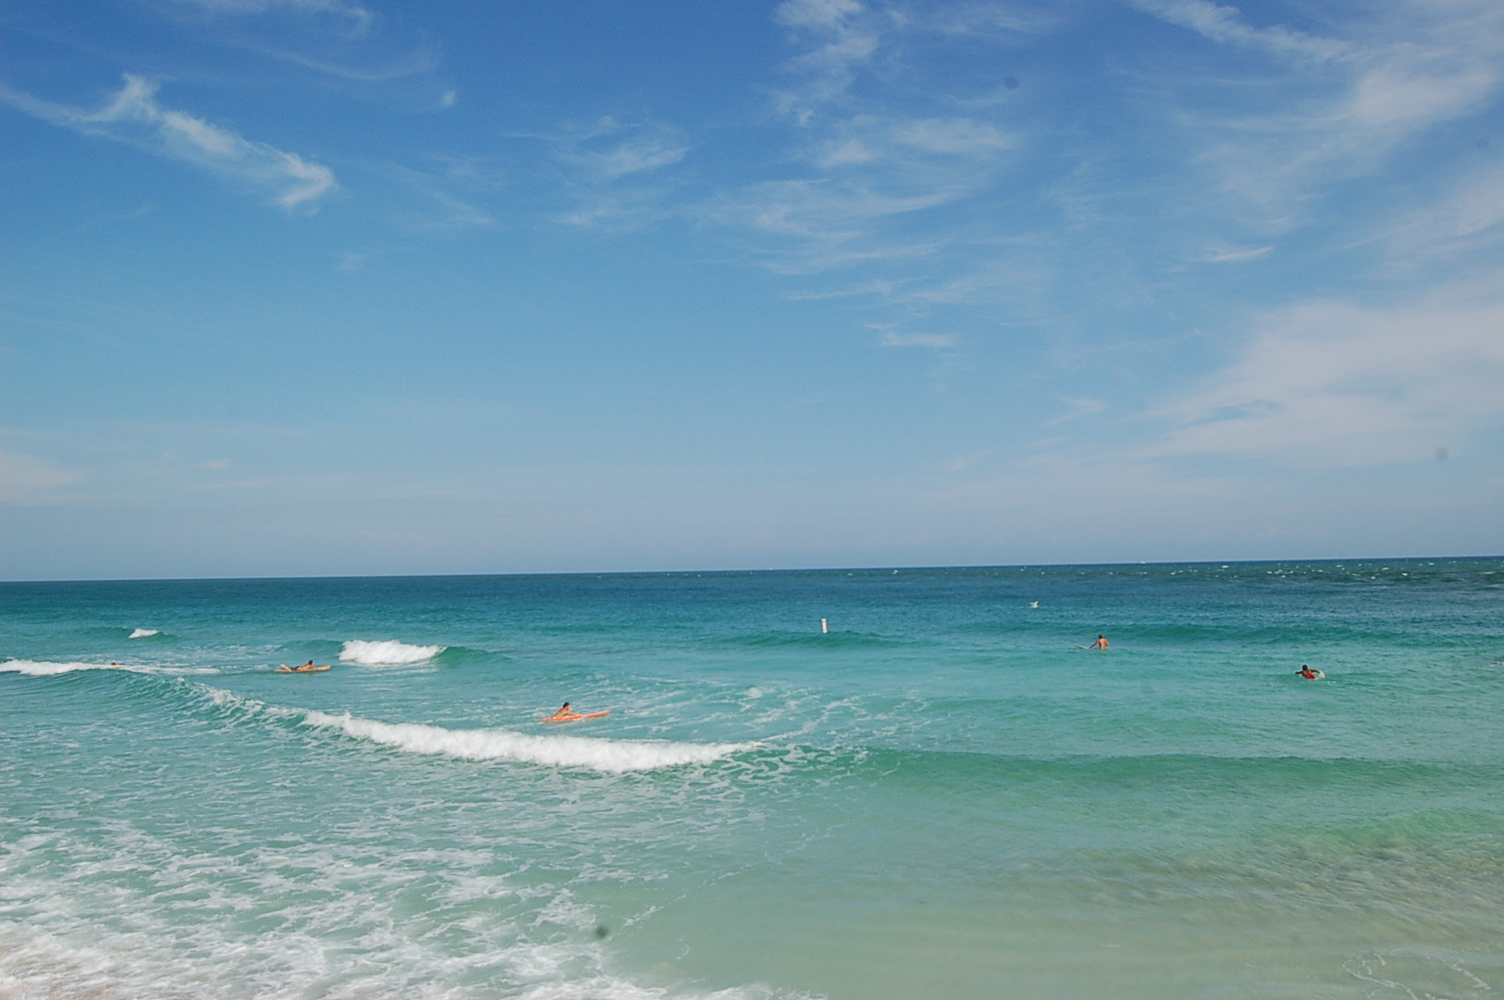 Florida adventure sports top 10 places to retire in florida for Best places to retire in florida